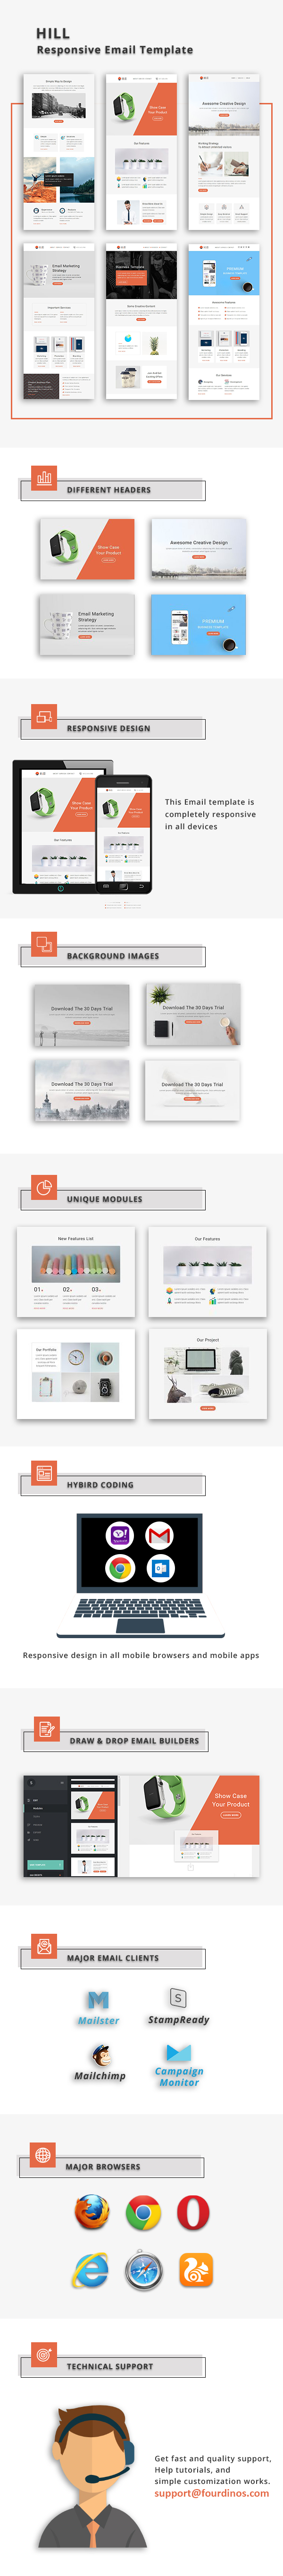 Hill - Responsive Email Template